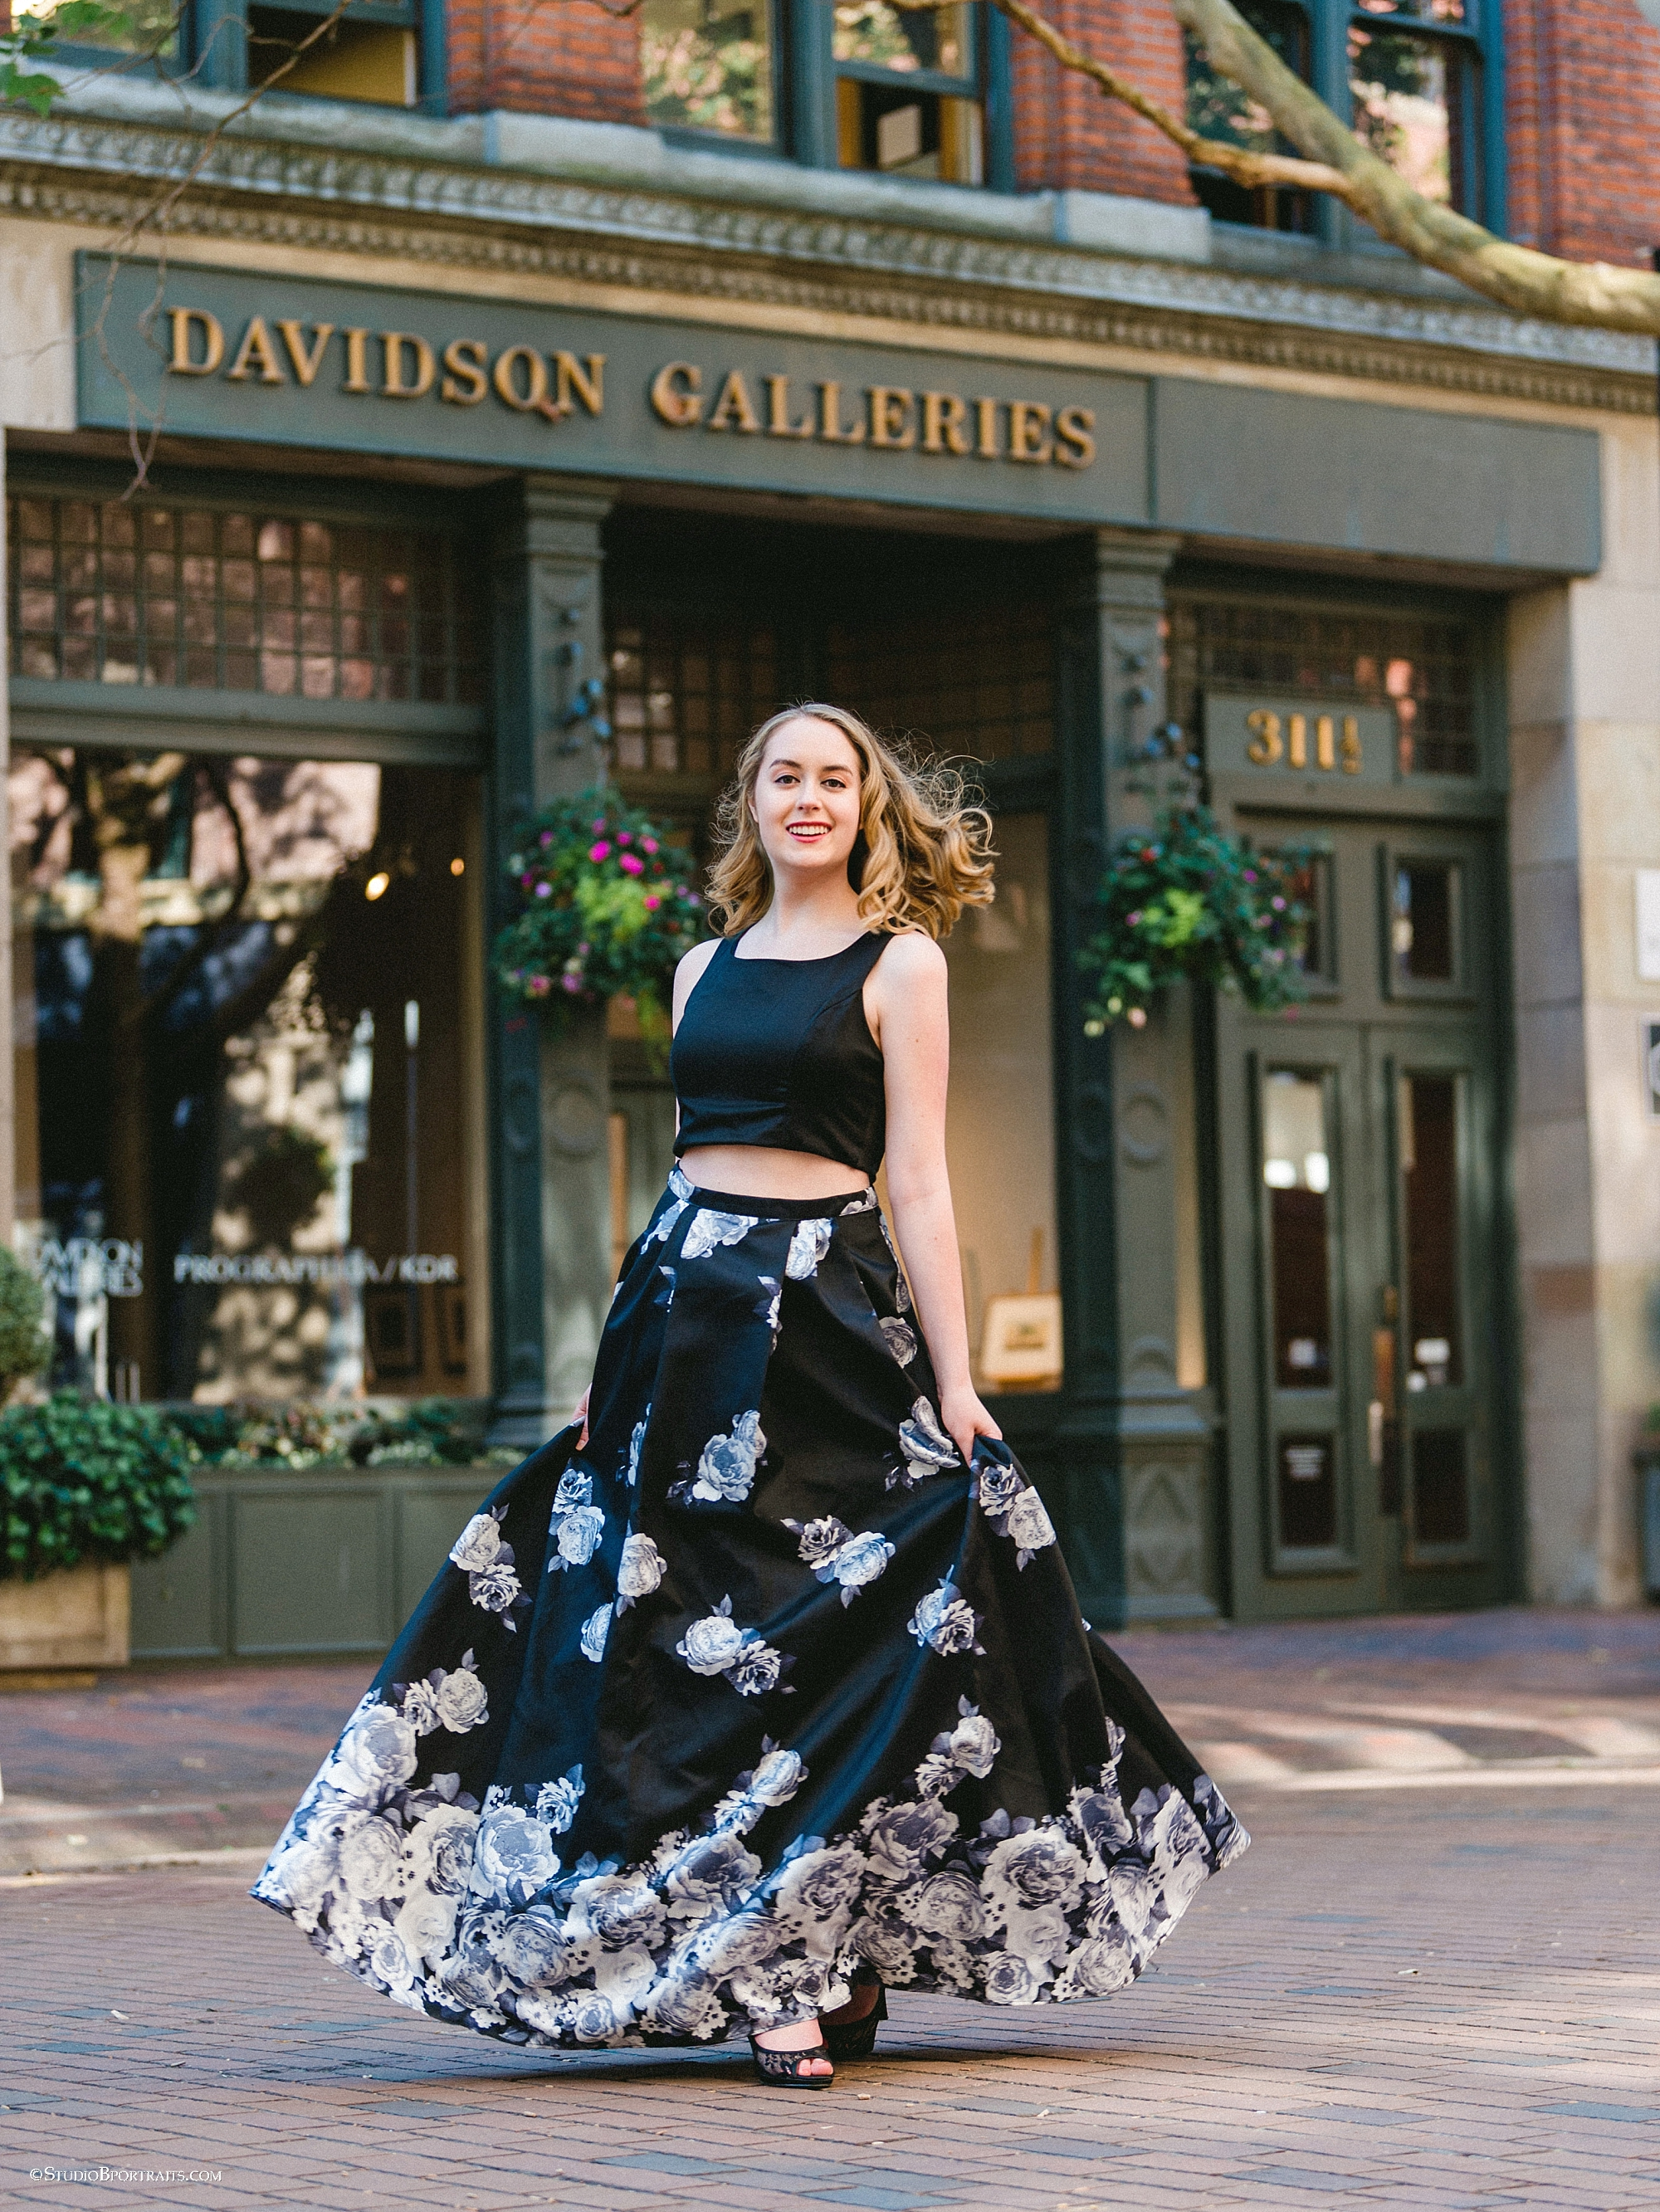 Issaquah High School | Class of 2019 beauty Kelly in a gorgeous two piece floral formal |Macy's